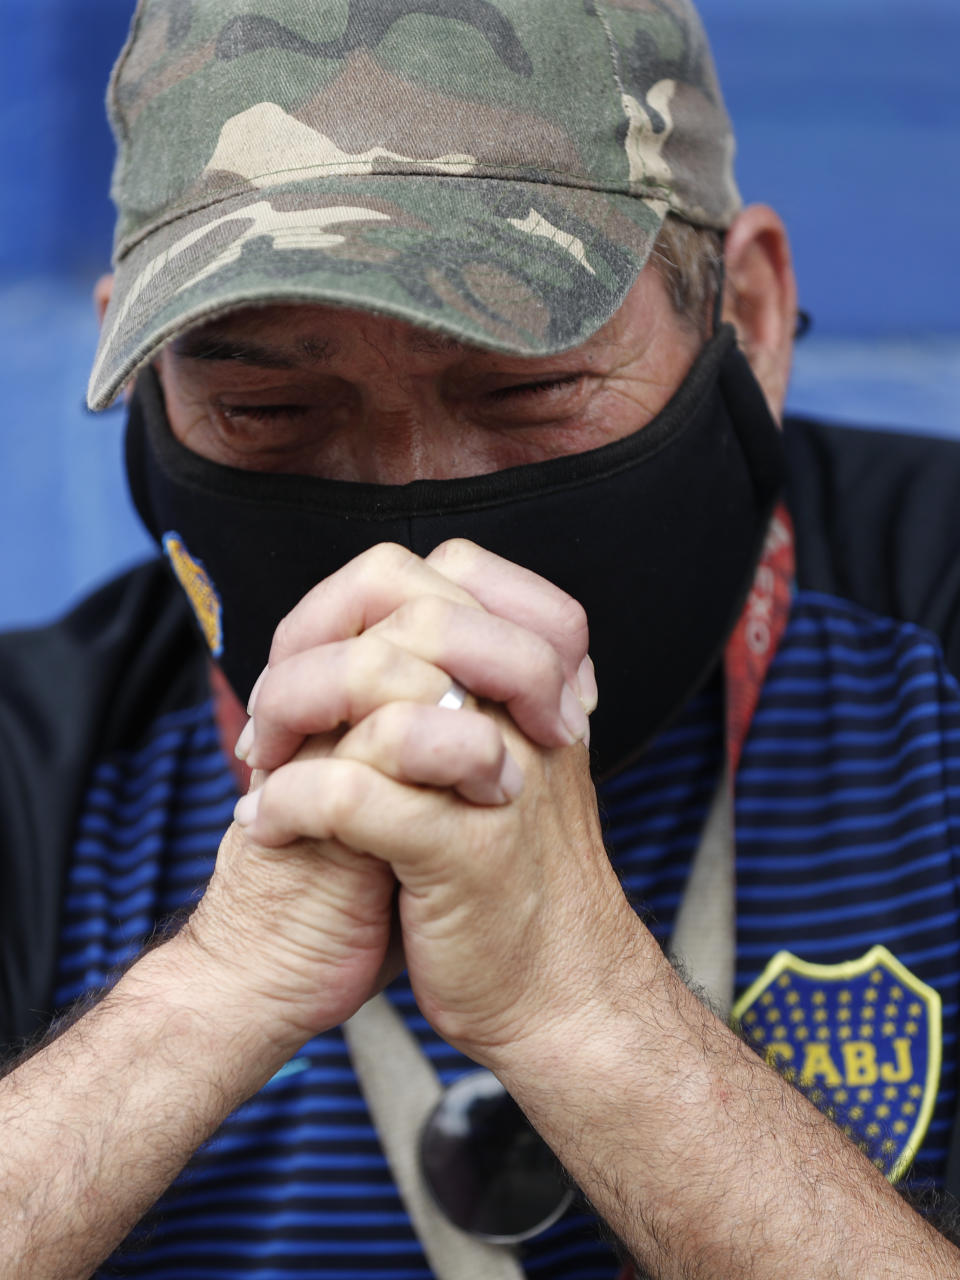 A fan mourns the death of Diego Maradona at the entrance of the Boca Juniors stadium known as La Bombomera, in Buenos Aires, Argentina, Wednesday, Nov. 25, 2020. The Argentine soccer great who was among the best players ever and who led his country to the 1986 World Cup title before later struggling with cocaine use and obesity, died from a heart attack on Wednesday at his home in Buenos Aires. He was 60. (AP Photo/Natacha Pisarenko)